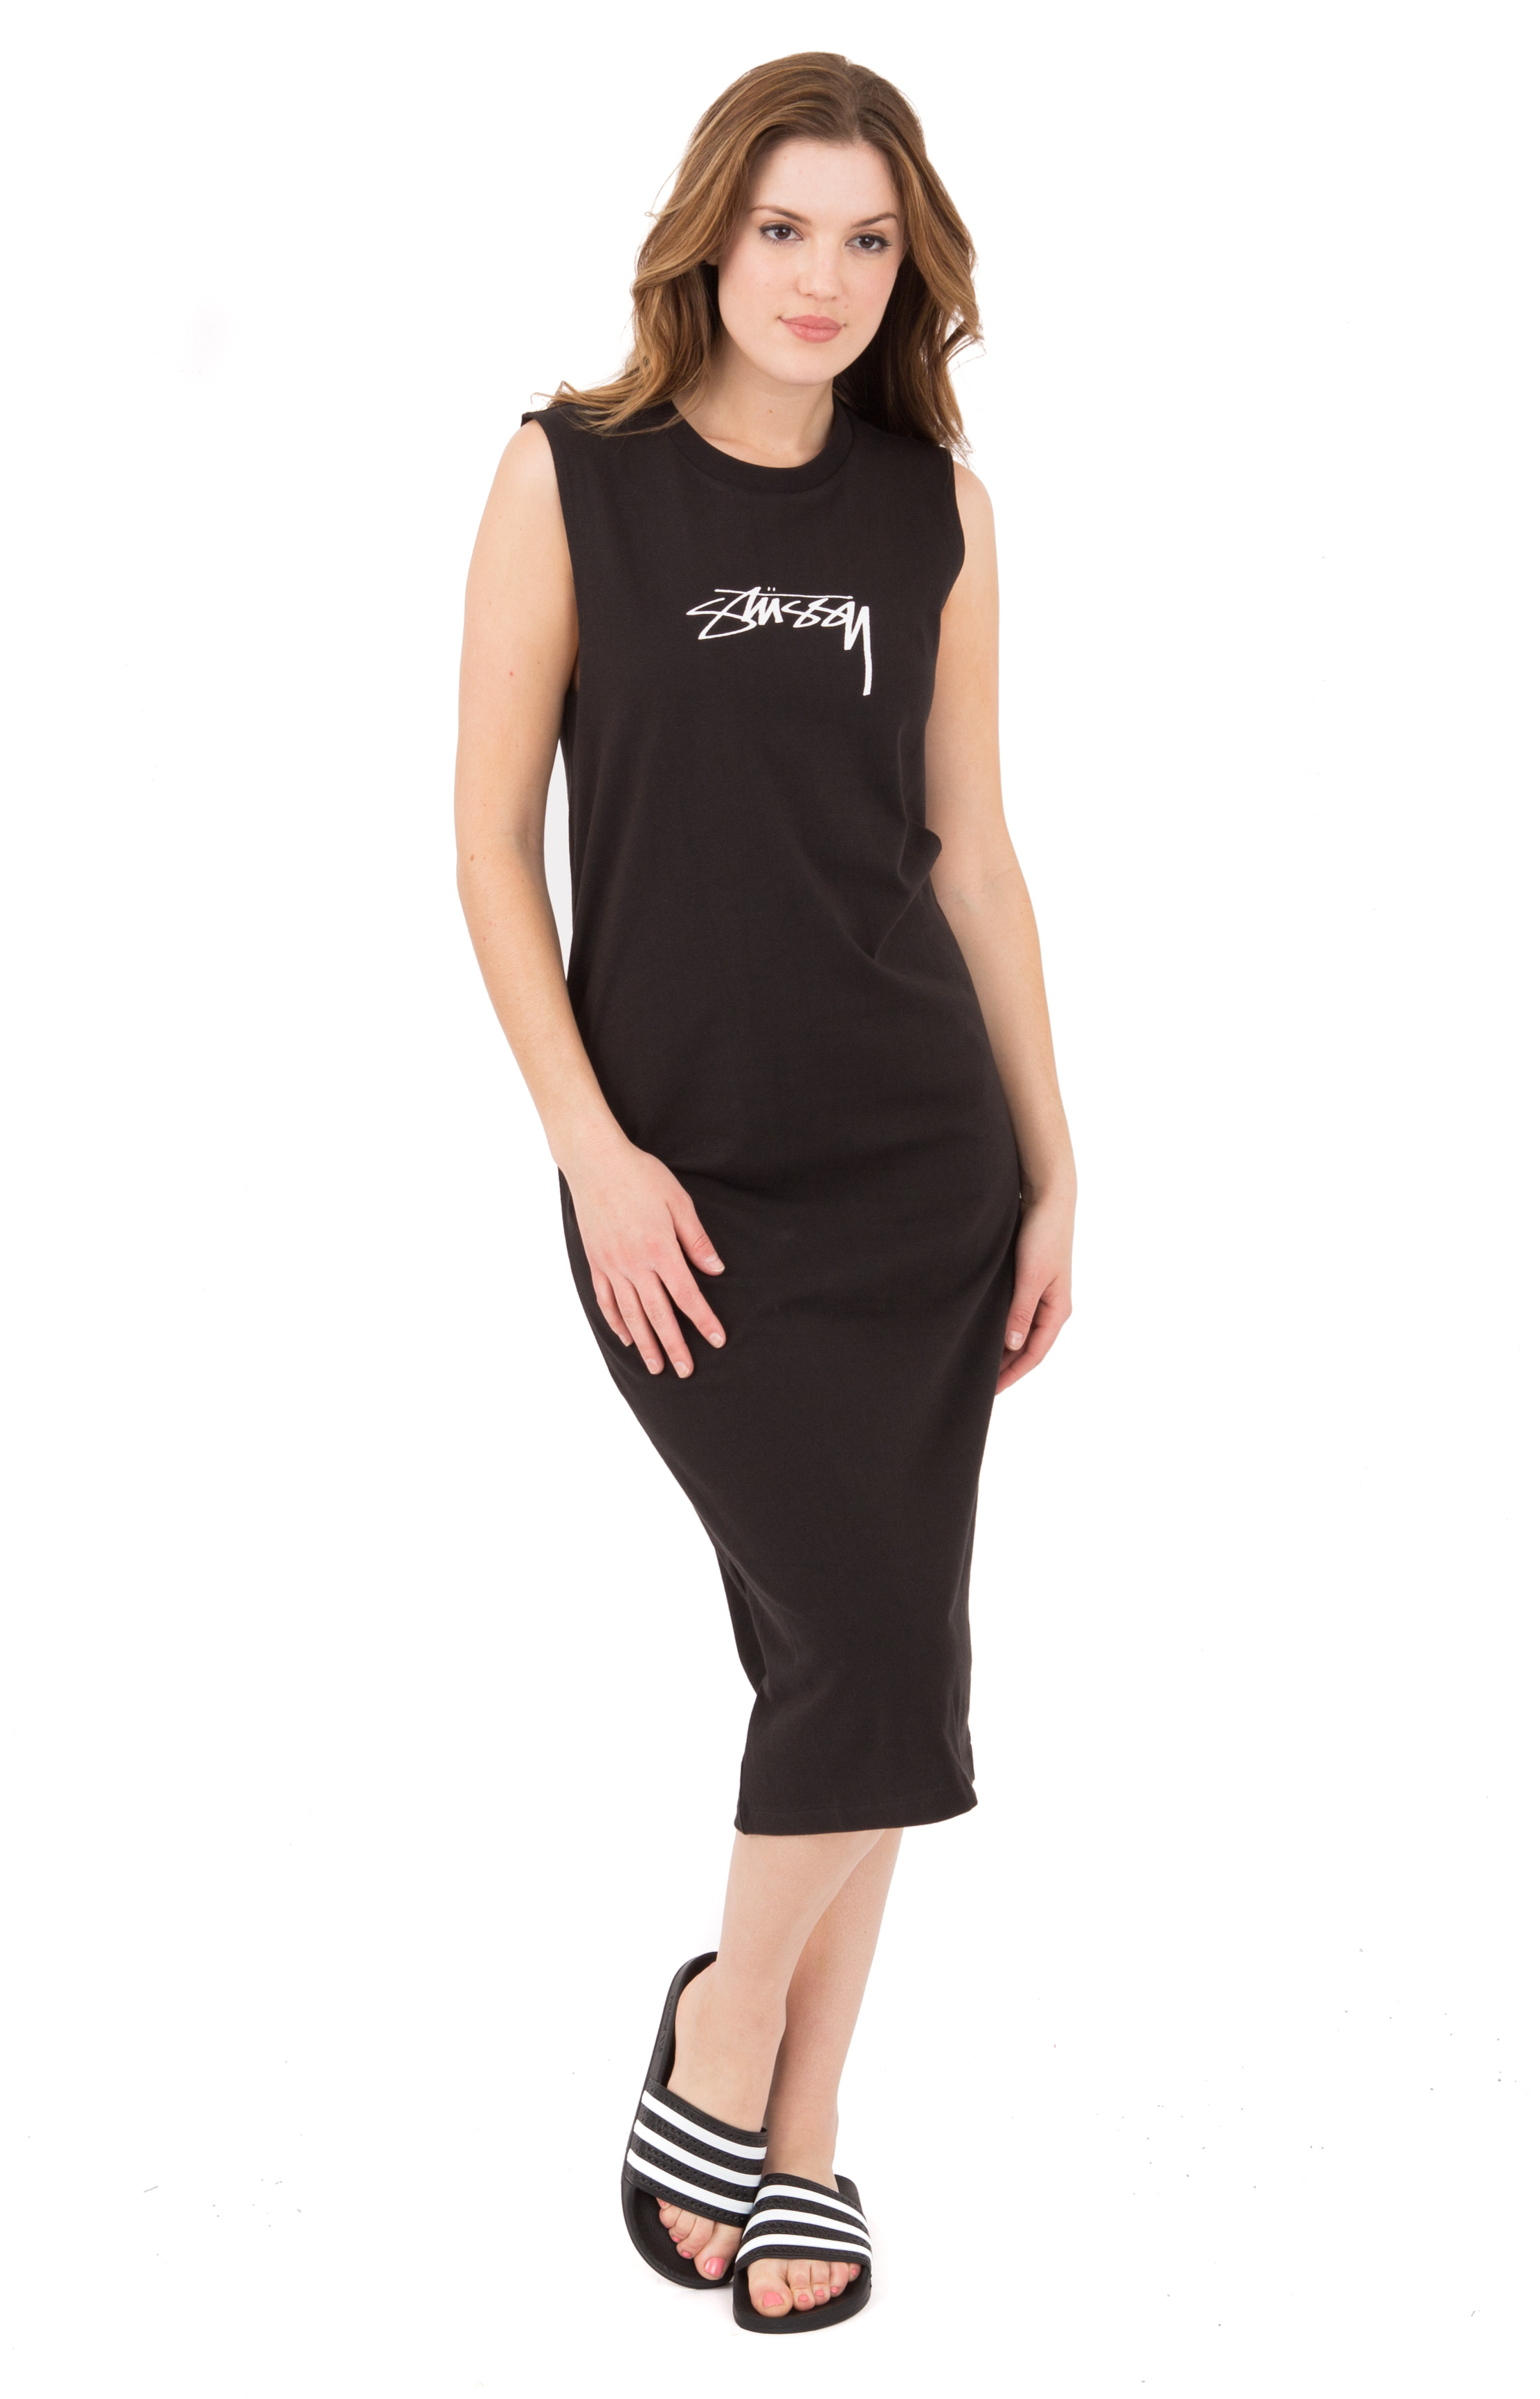 Ezra Muscle Dress - Black